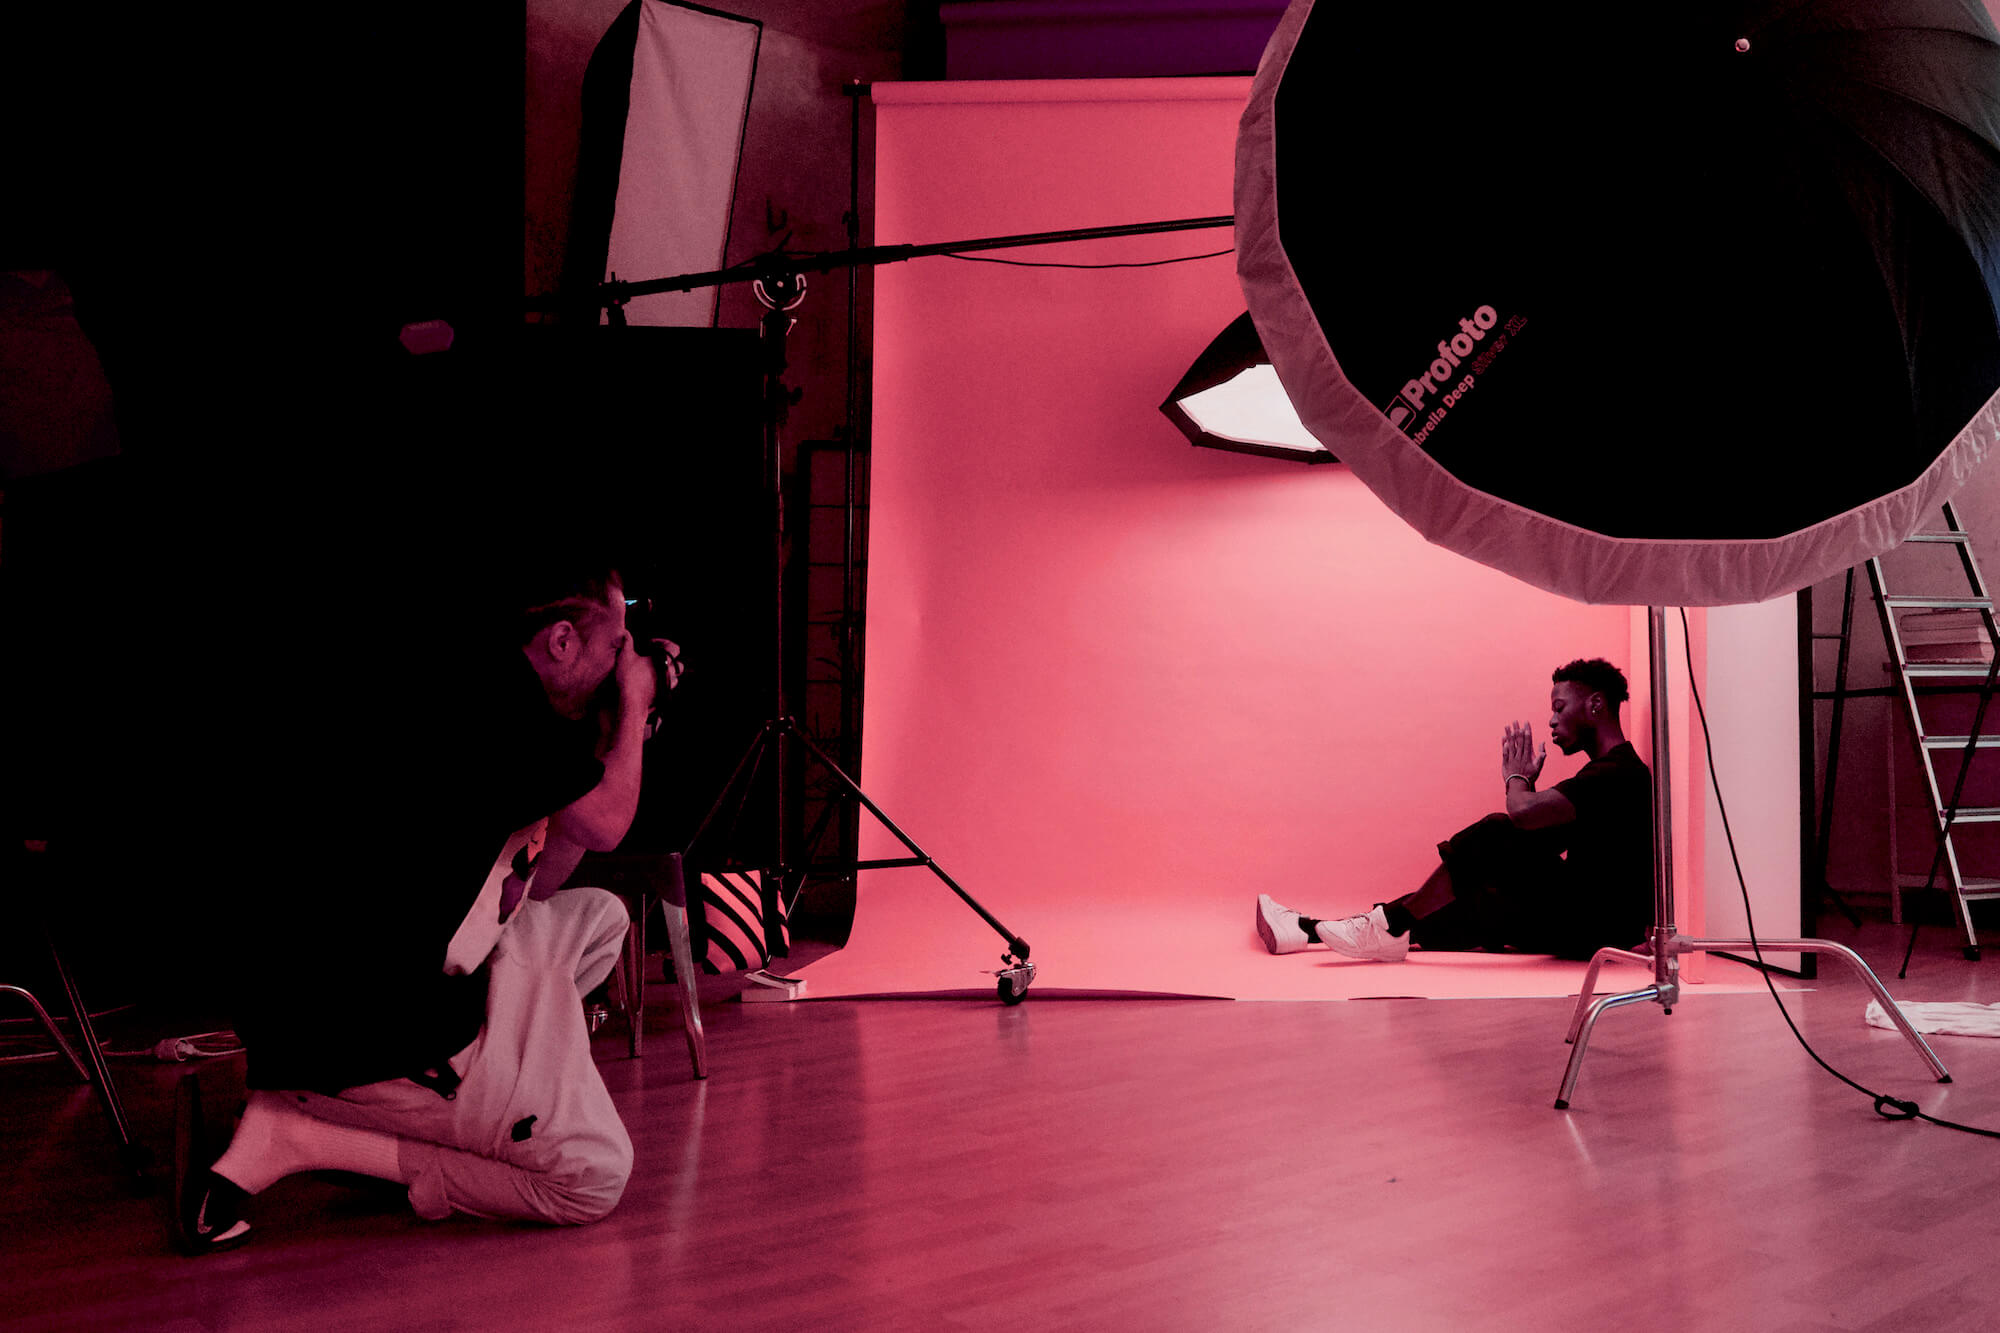 Photoshoot for a jewellery brand, black model in a pink background in a professional photo studio.